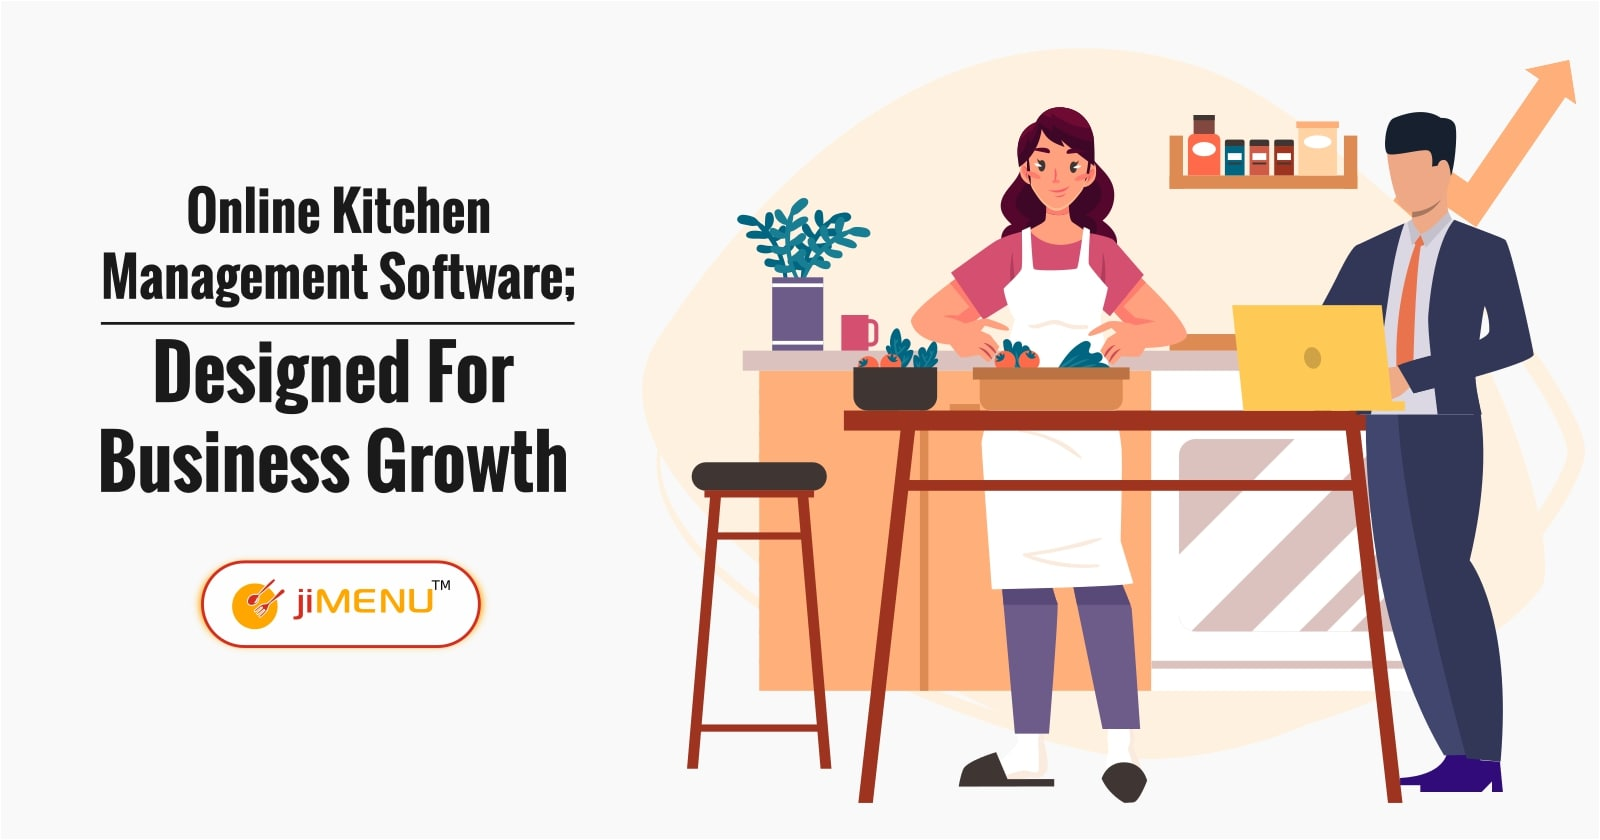 Online Kitchen Management Software; Designed For Business Growth